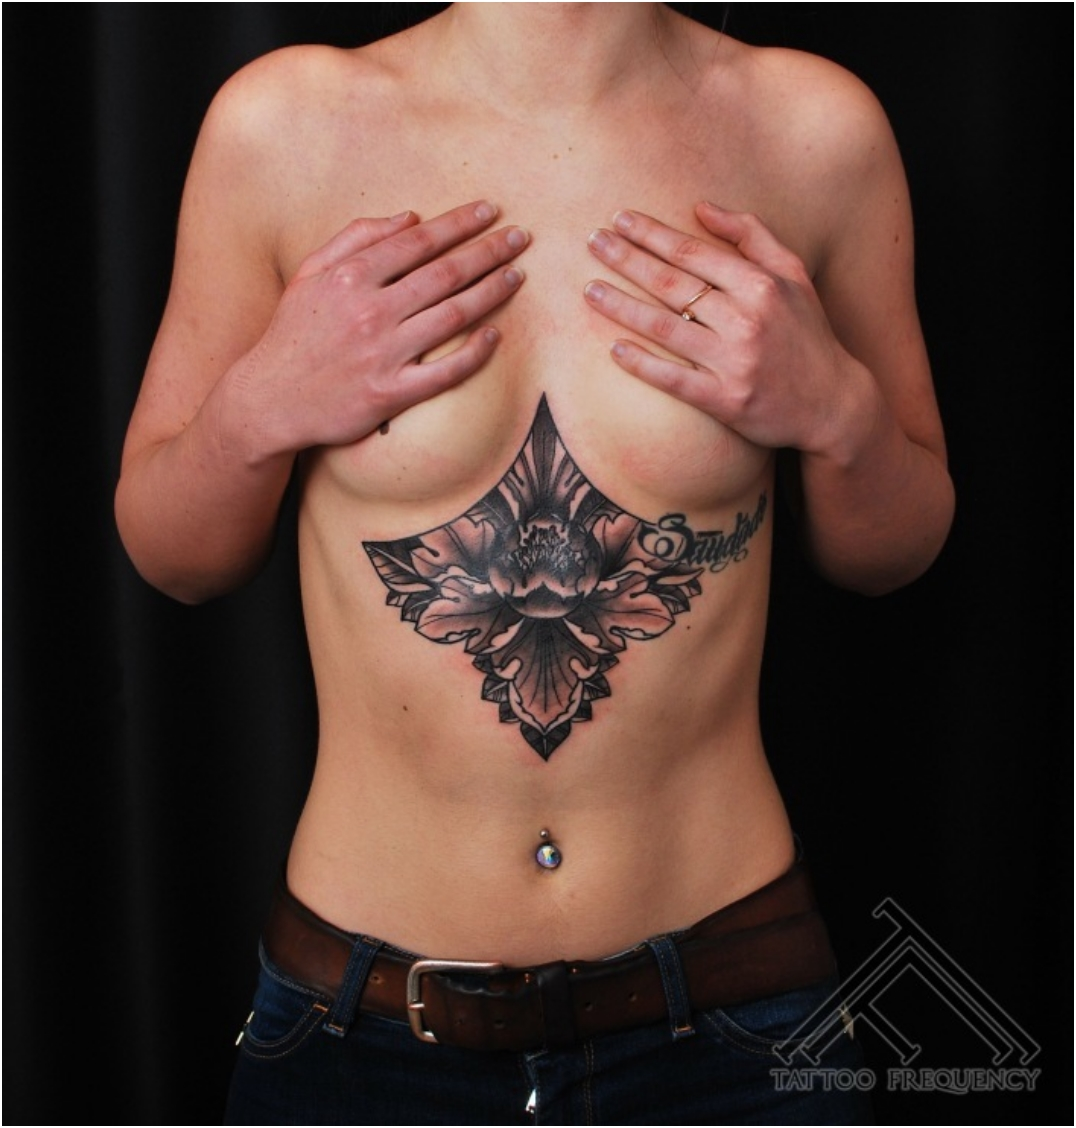 65 Sizzling Under breast Tattoos Youu0026#39;ll Drool Over - Ritely